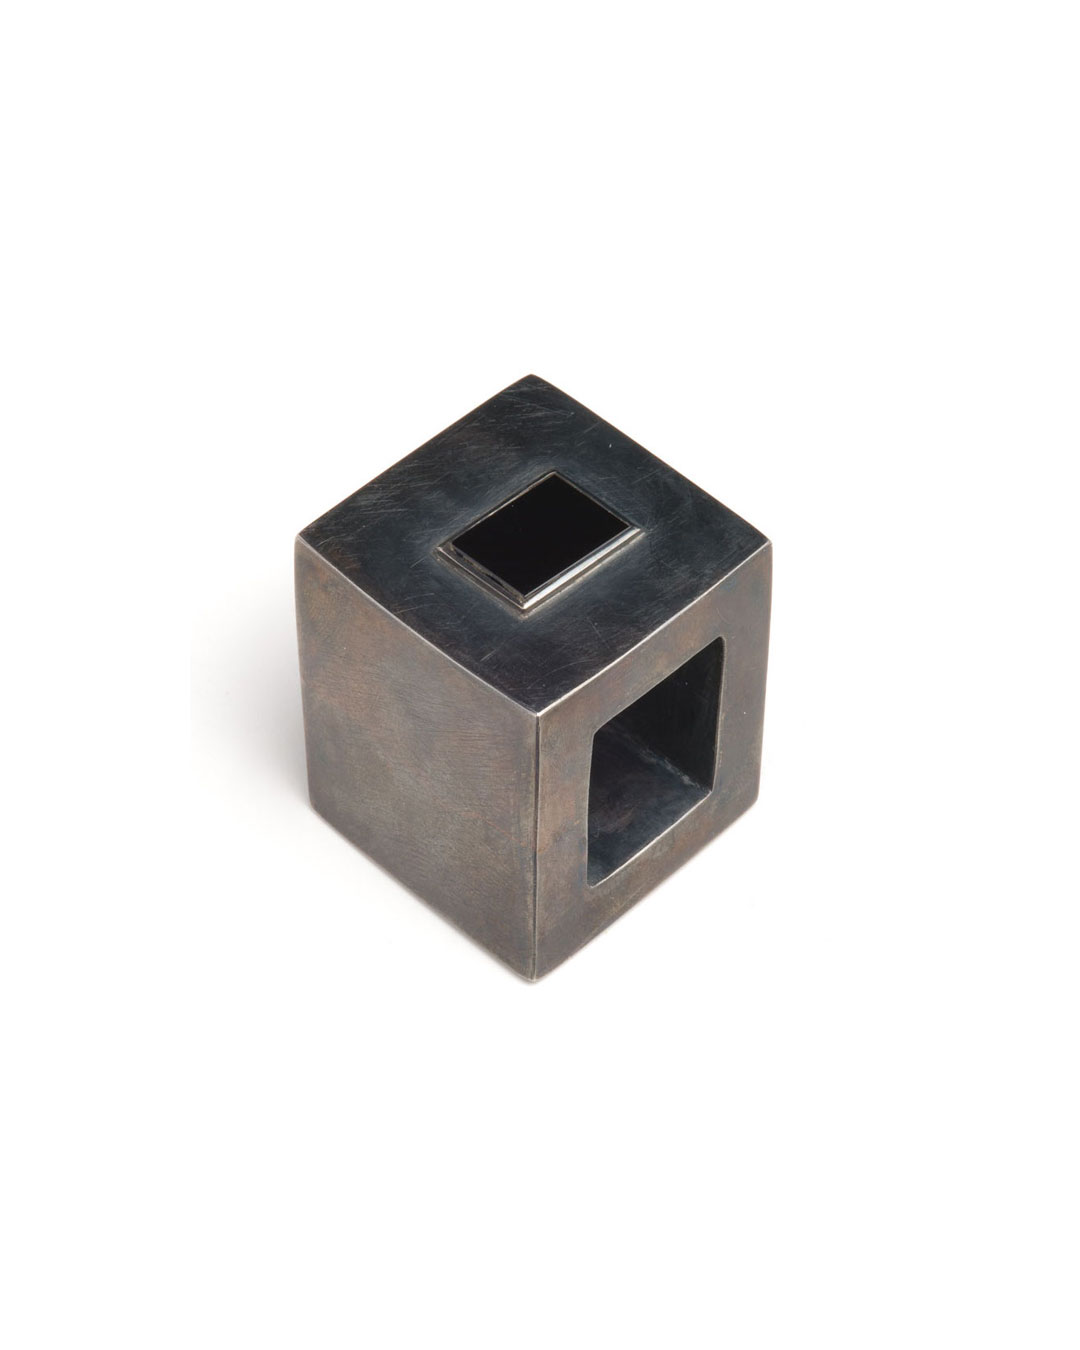 Winfried Krüger, untitled, 1988, ring; silver, glass, 35 x 35 mm, €970